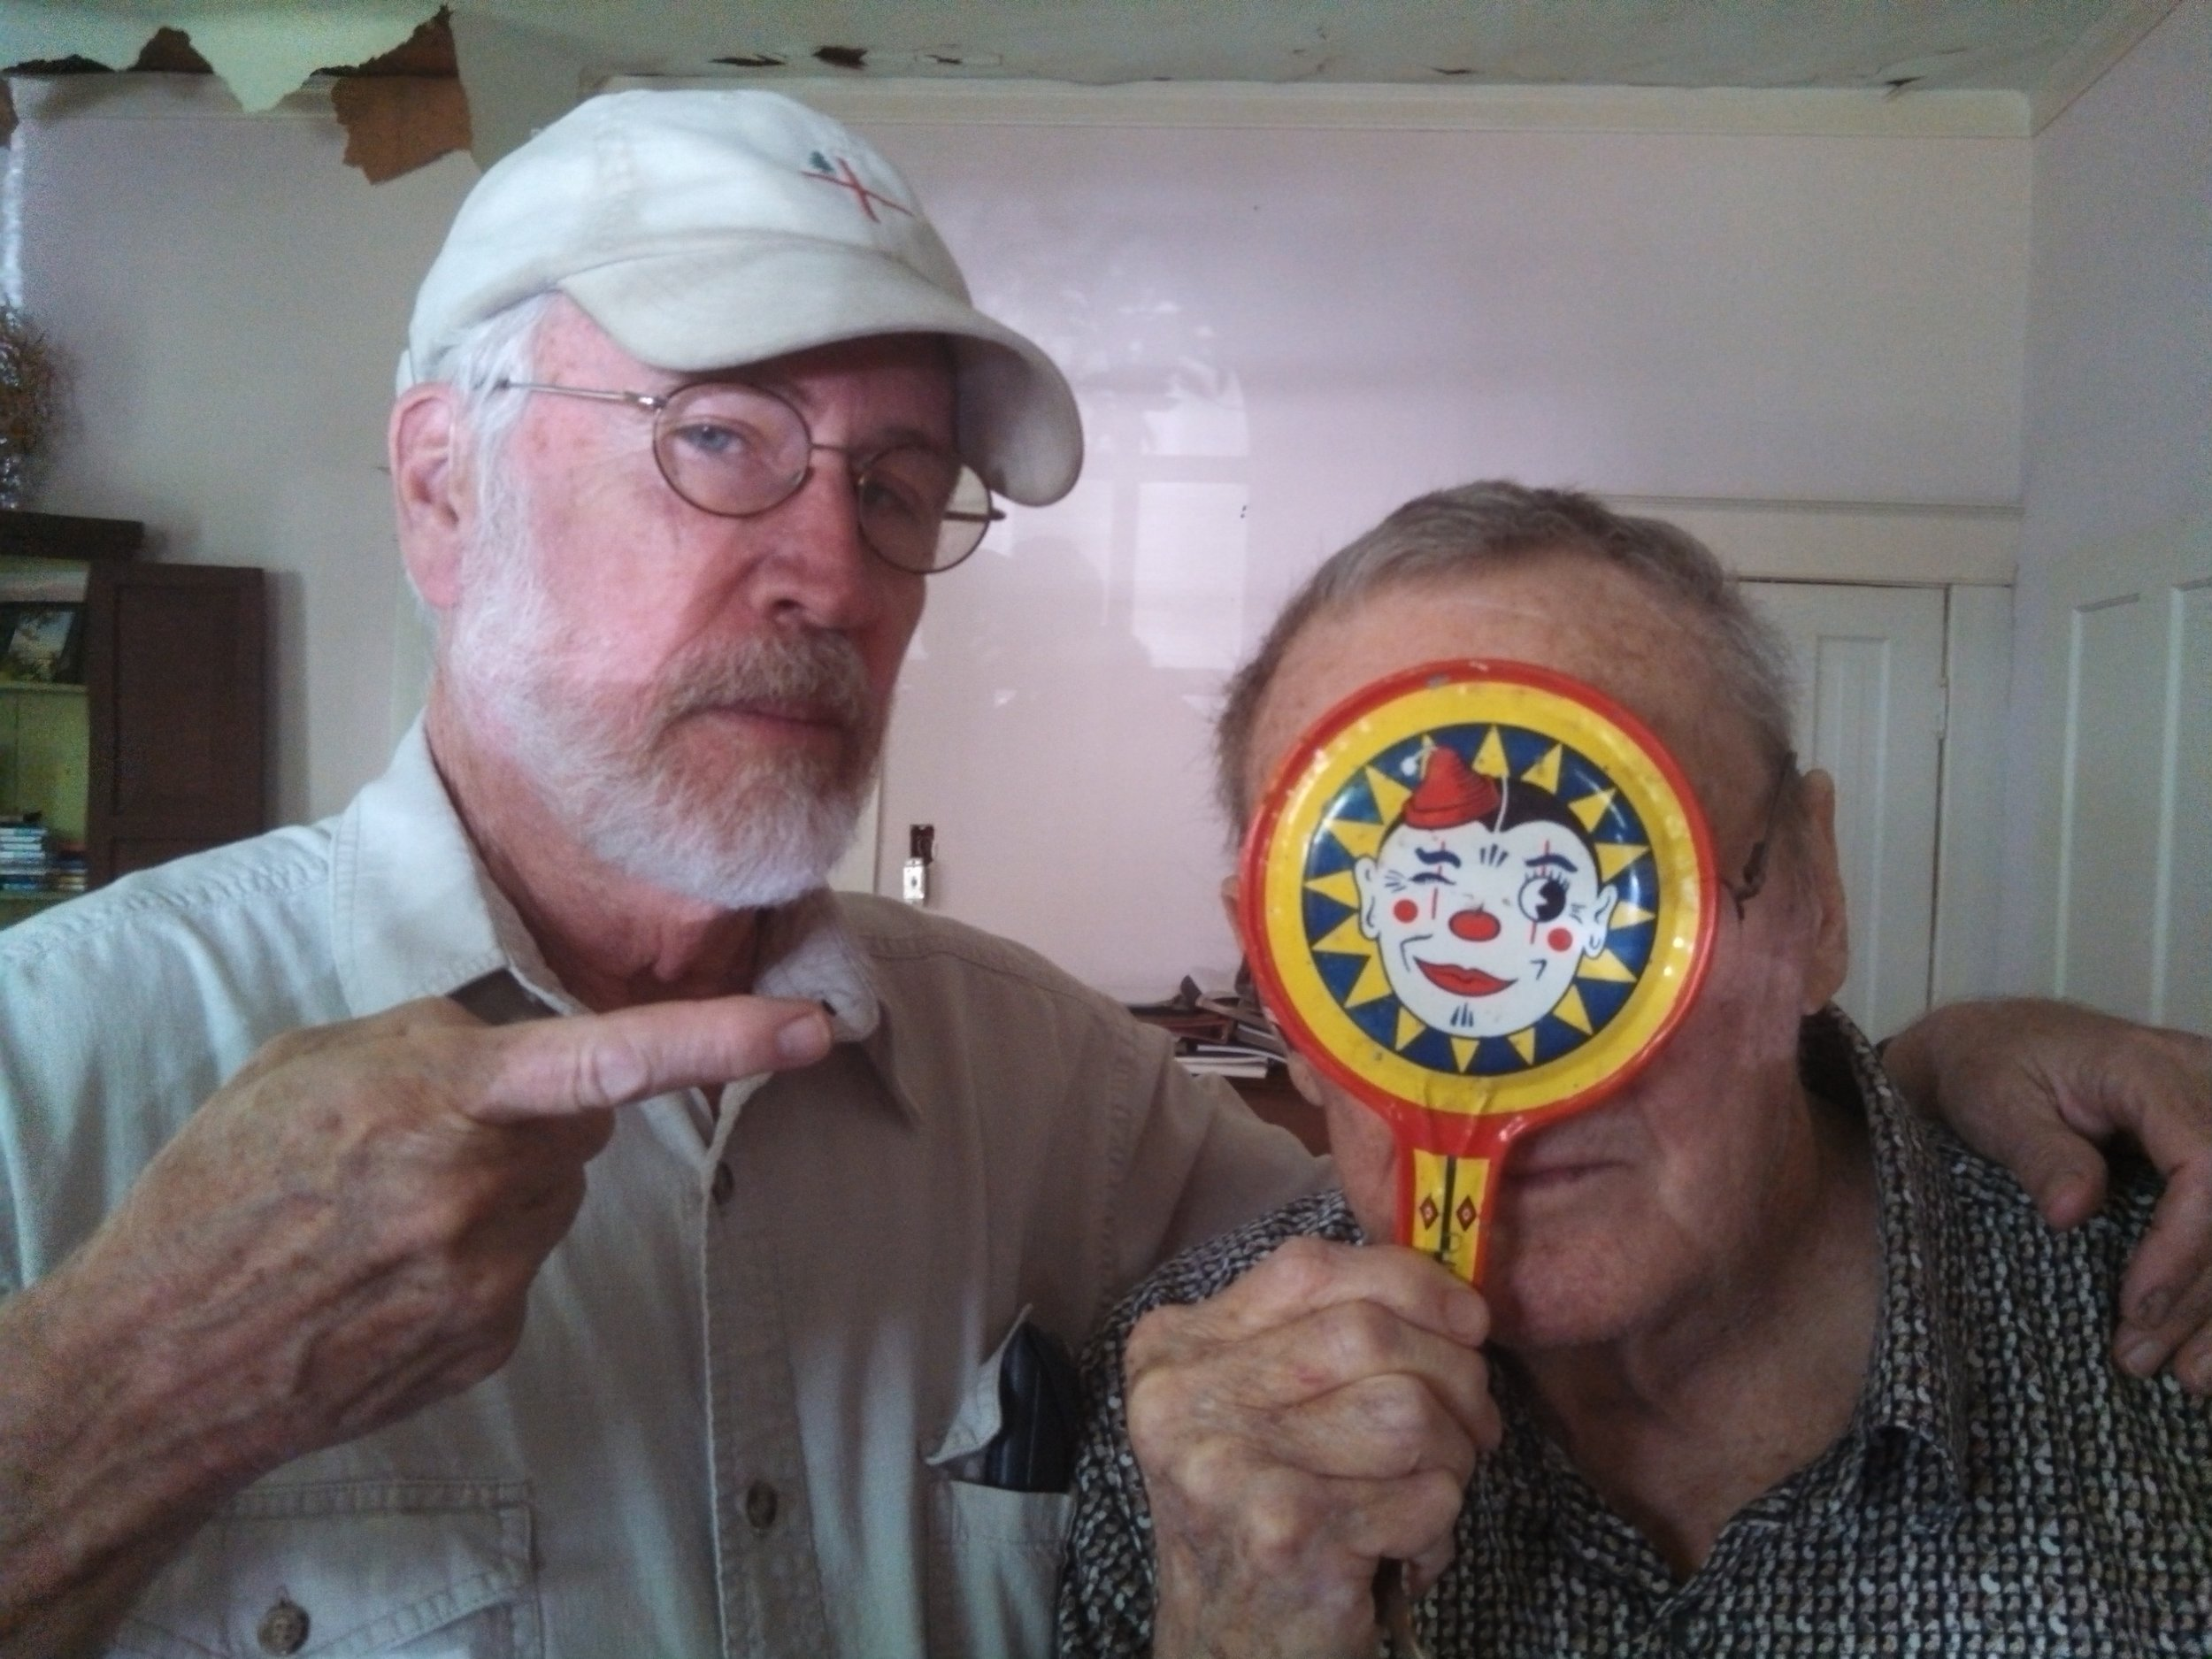 Jim Moore and Glenn as Winking Clown